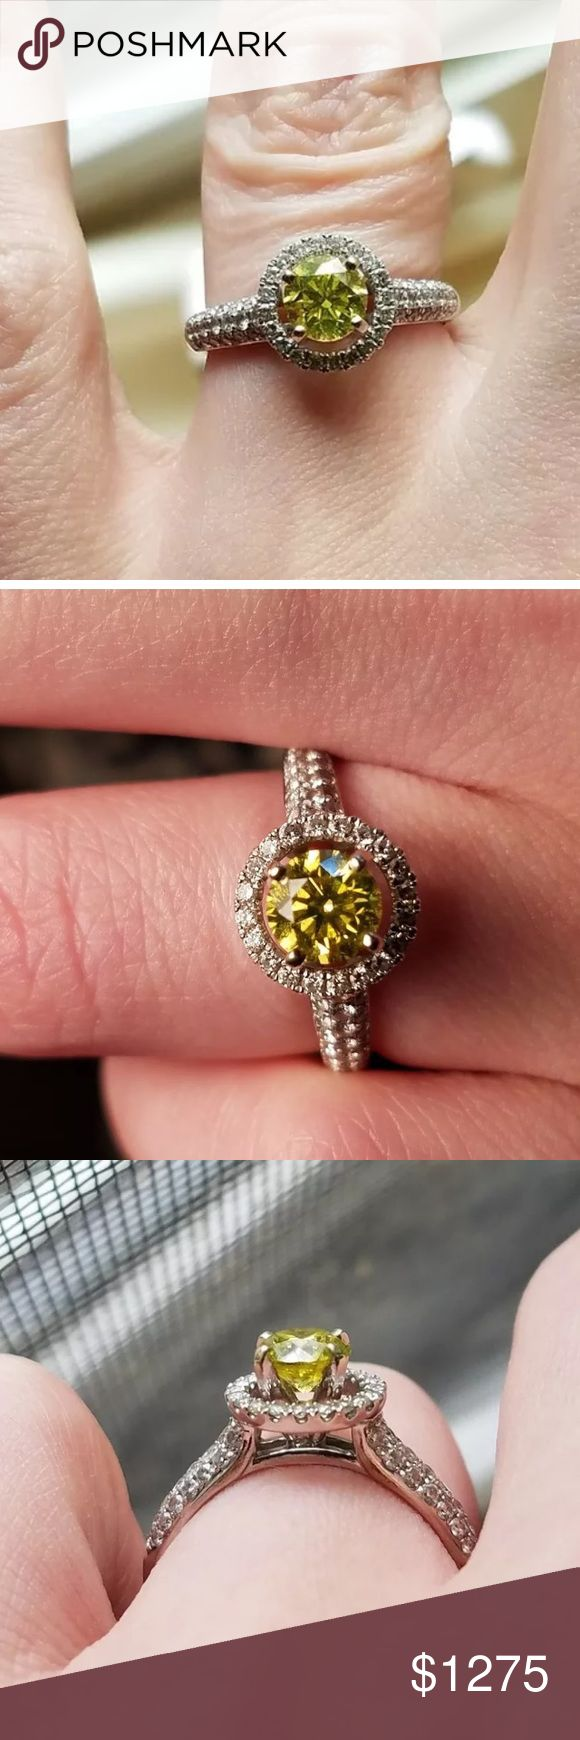 1.20 carat 18k white gold yellow diamond ring 1.20 carat 18k white gold yellow diamond ring! This is a vivid yellow 0.75 carat center diamond with a halo of white diamonds around it. Comes with appraisal. Jewelry Rings